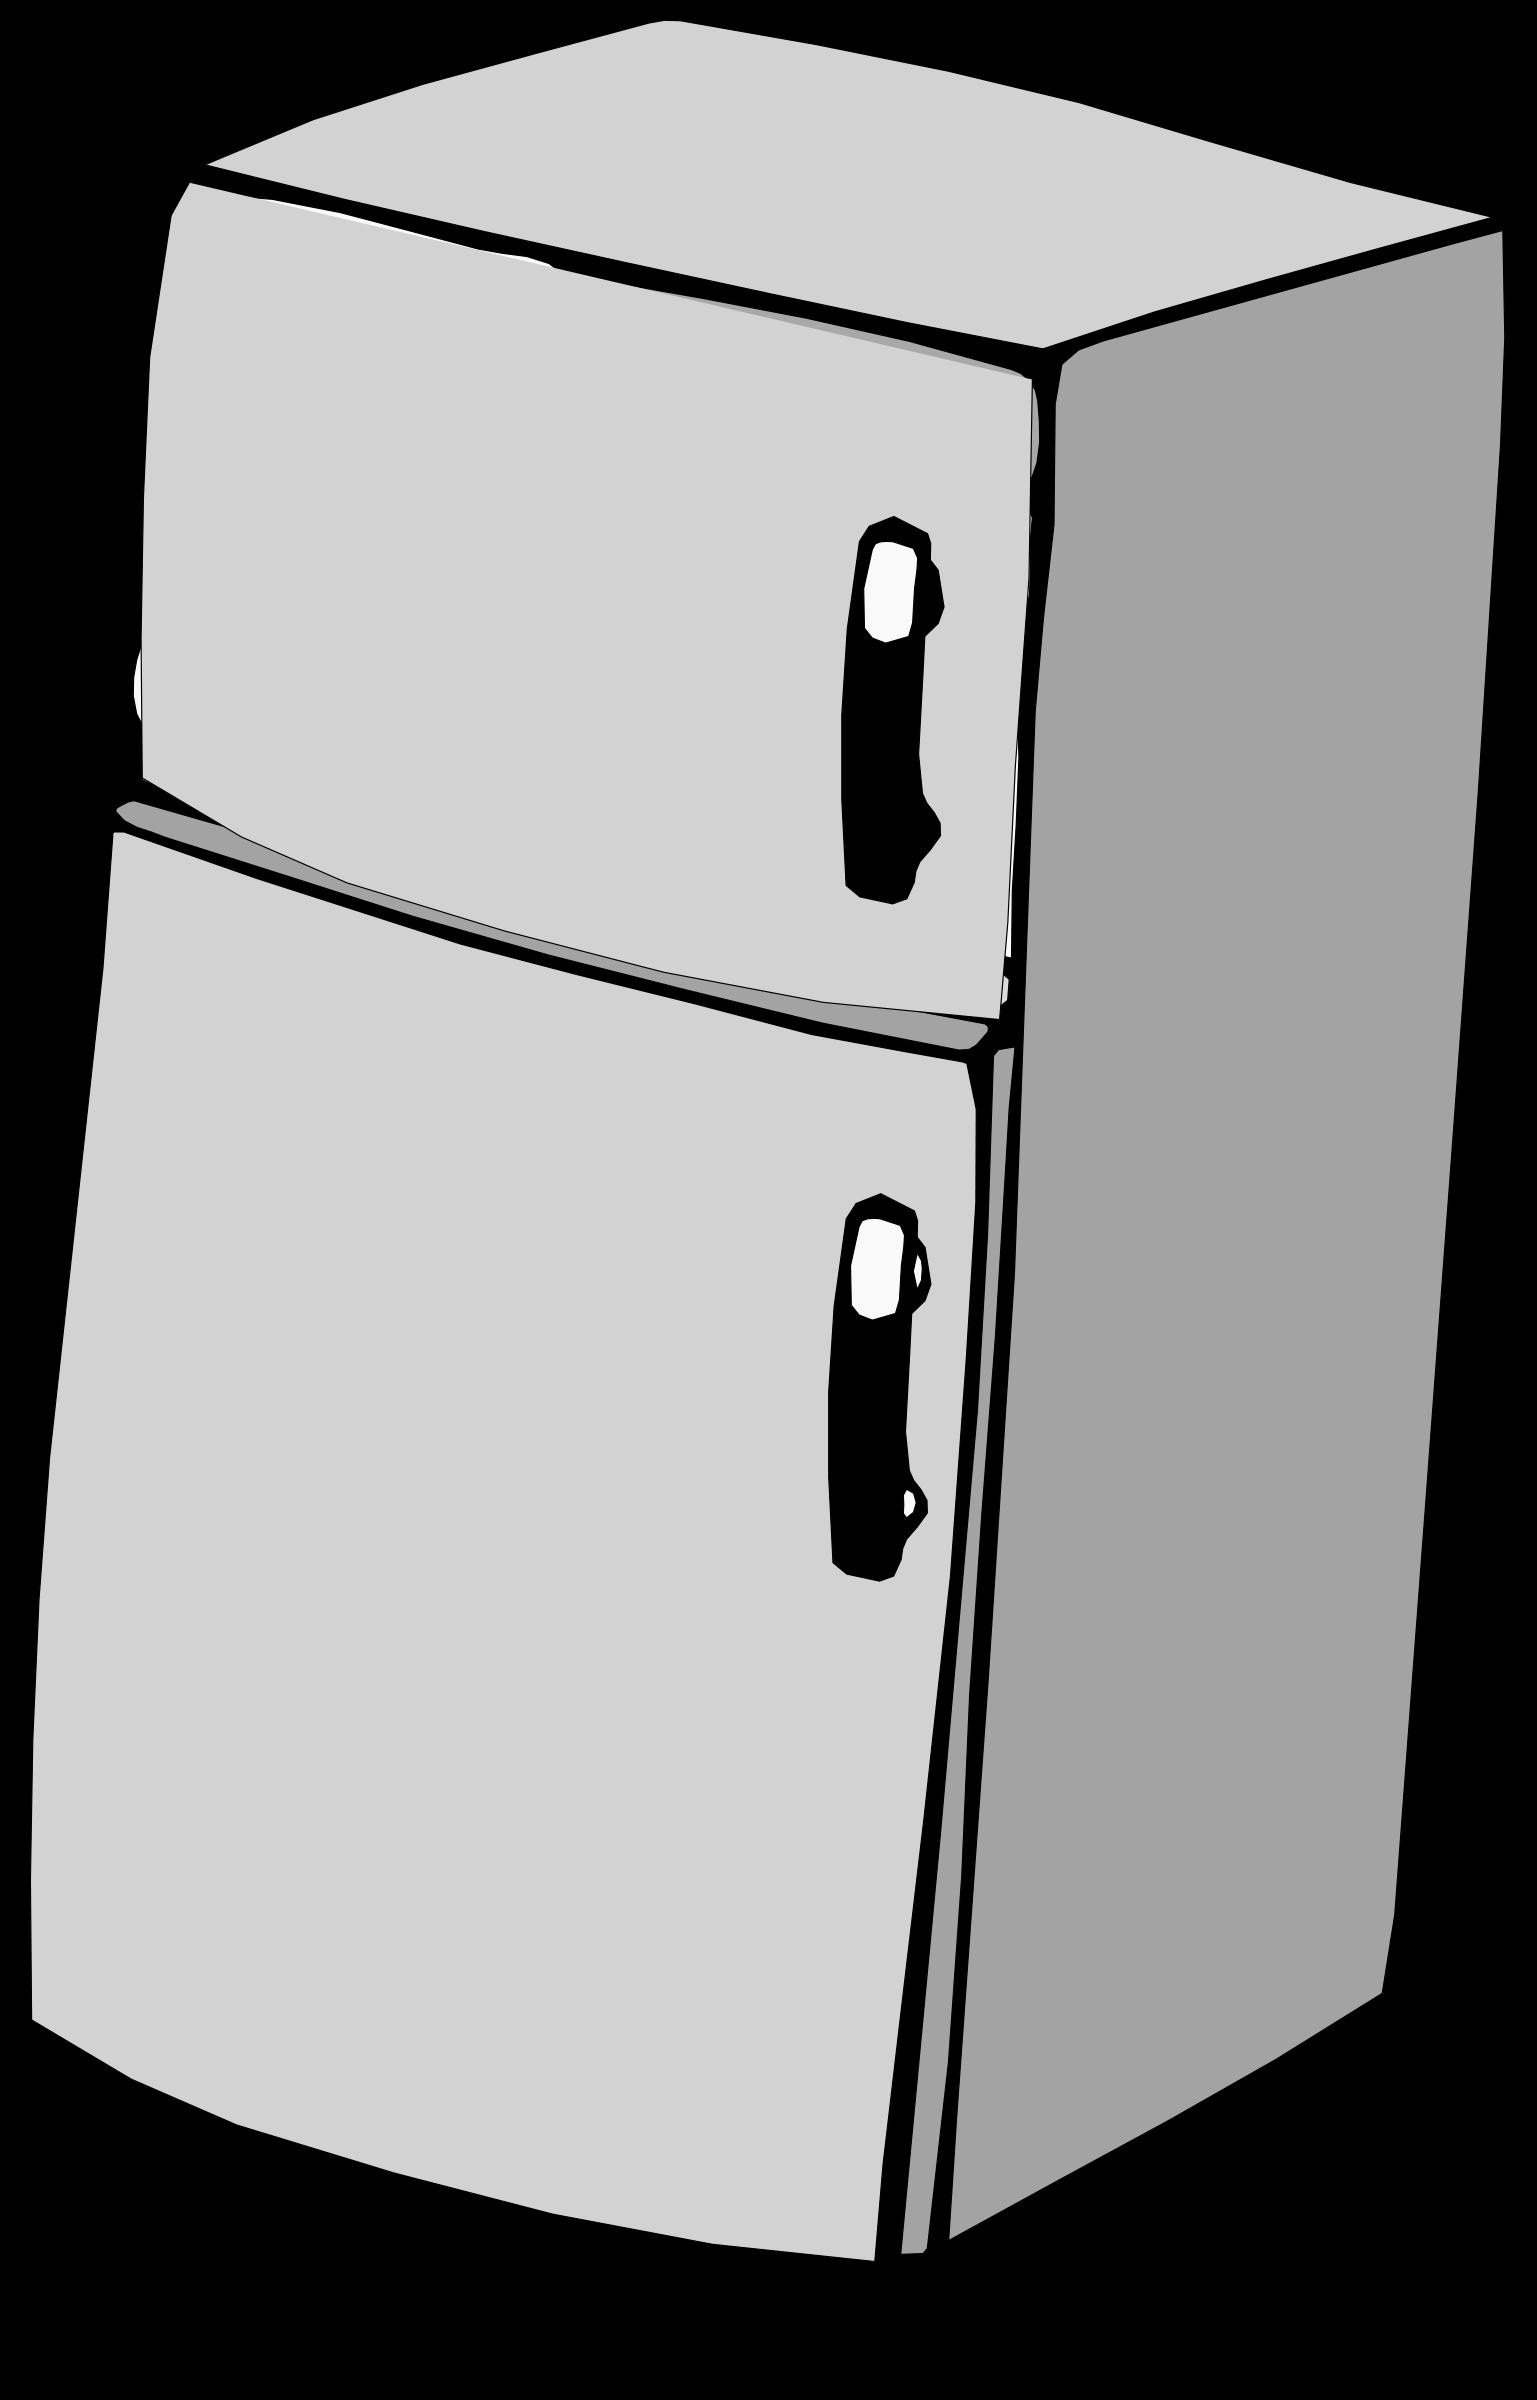 Fridge clipart closed. Cliparts free download best